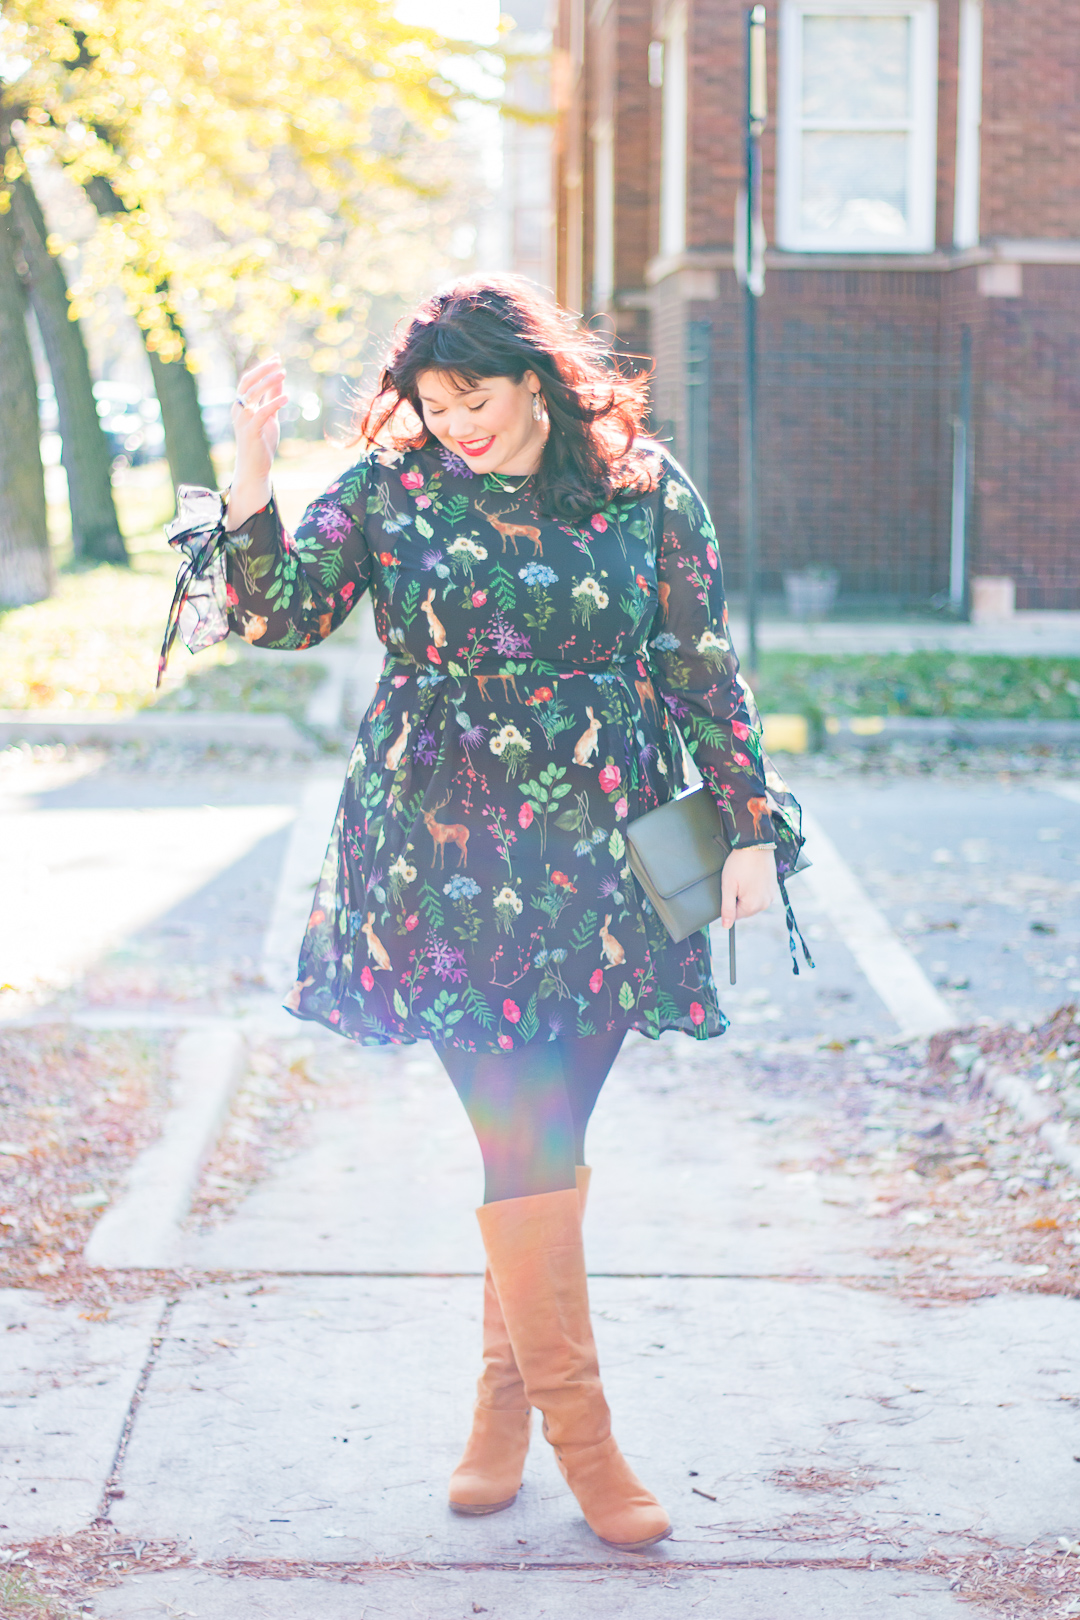 Plus Size OOTD: Unique 21 Tea Dress in Garden Floral Print